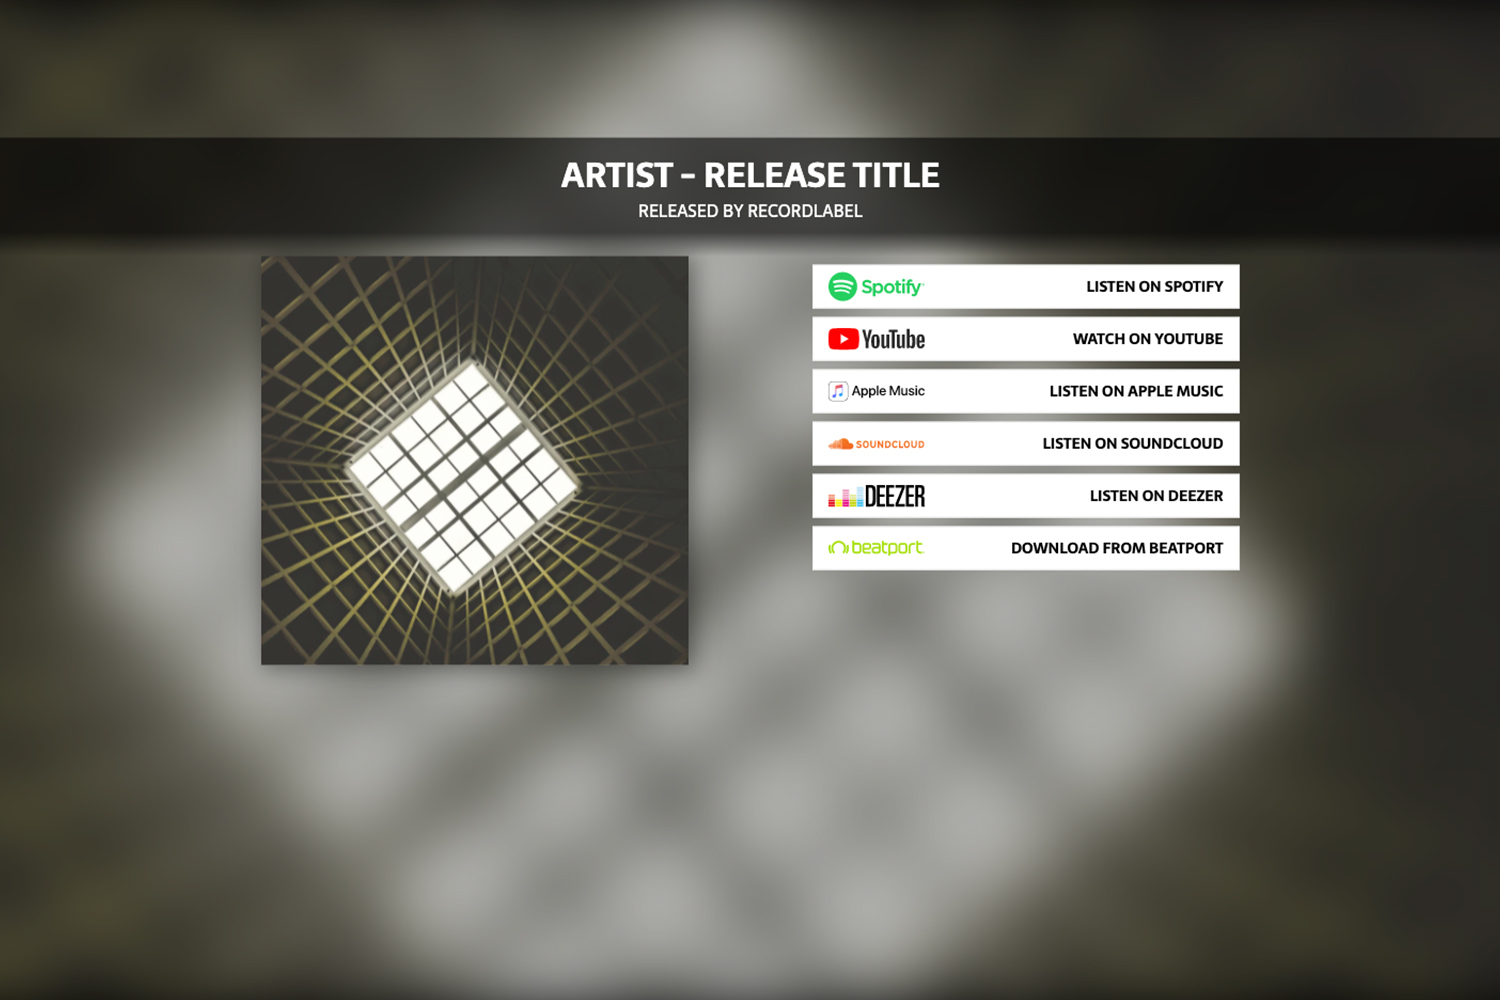 Add new Release - Tab Artists